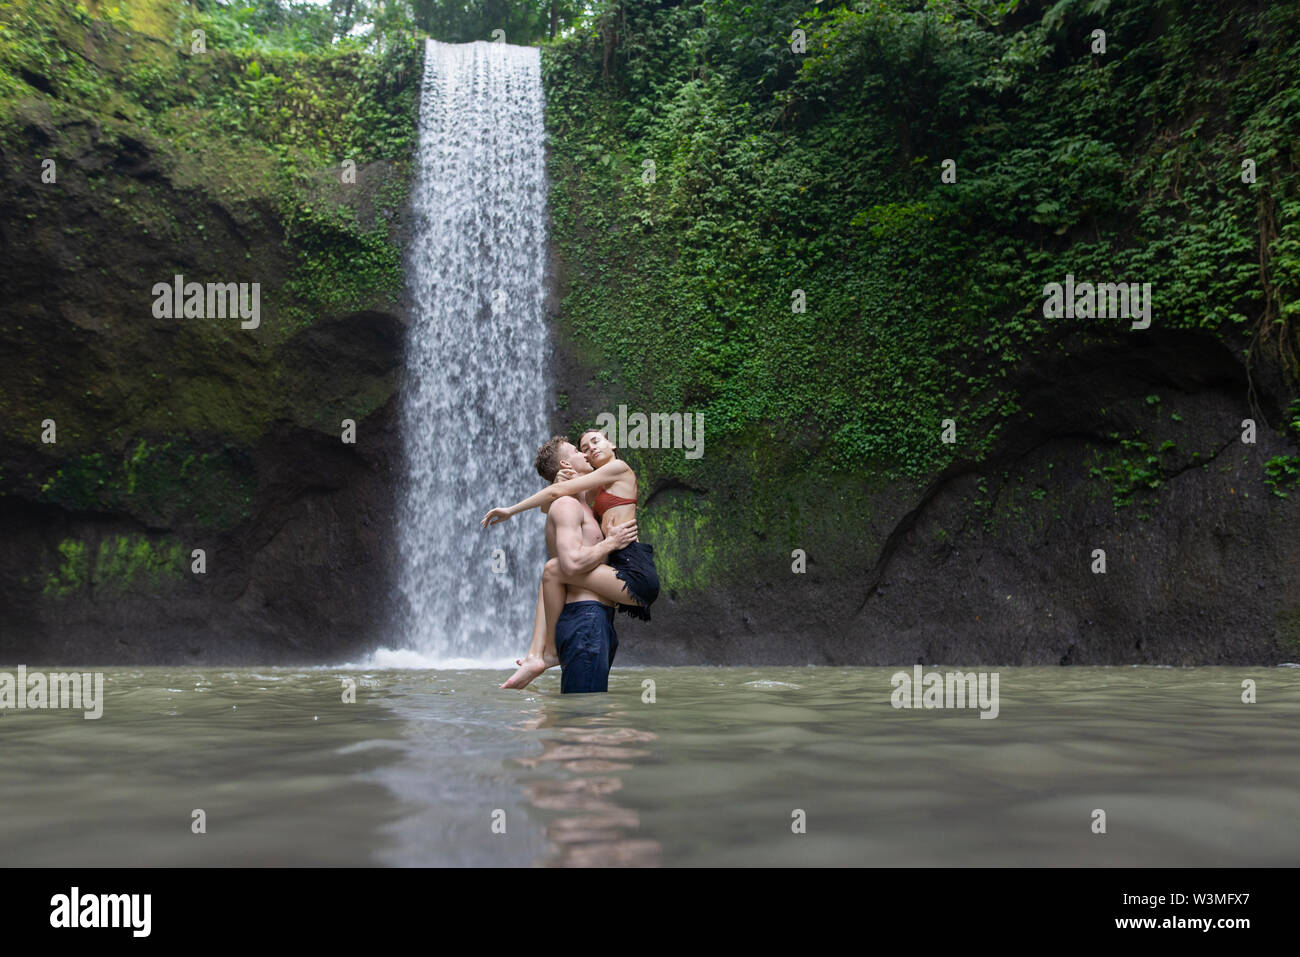 Young man carrying young woman in river by Tibumana Waterfall in Bali, Indonesia - Stock Image